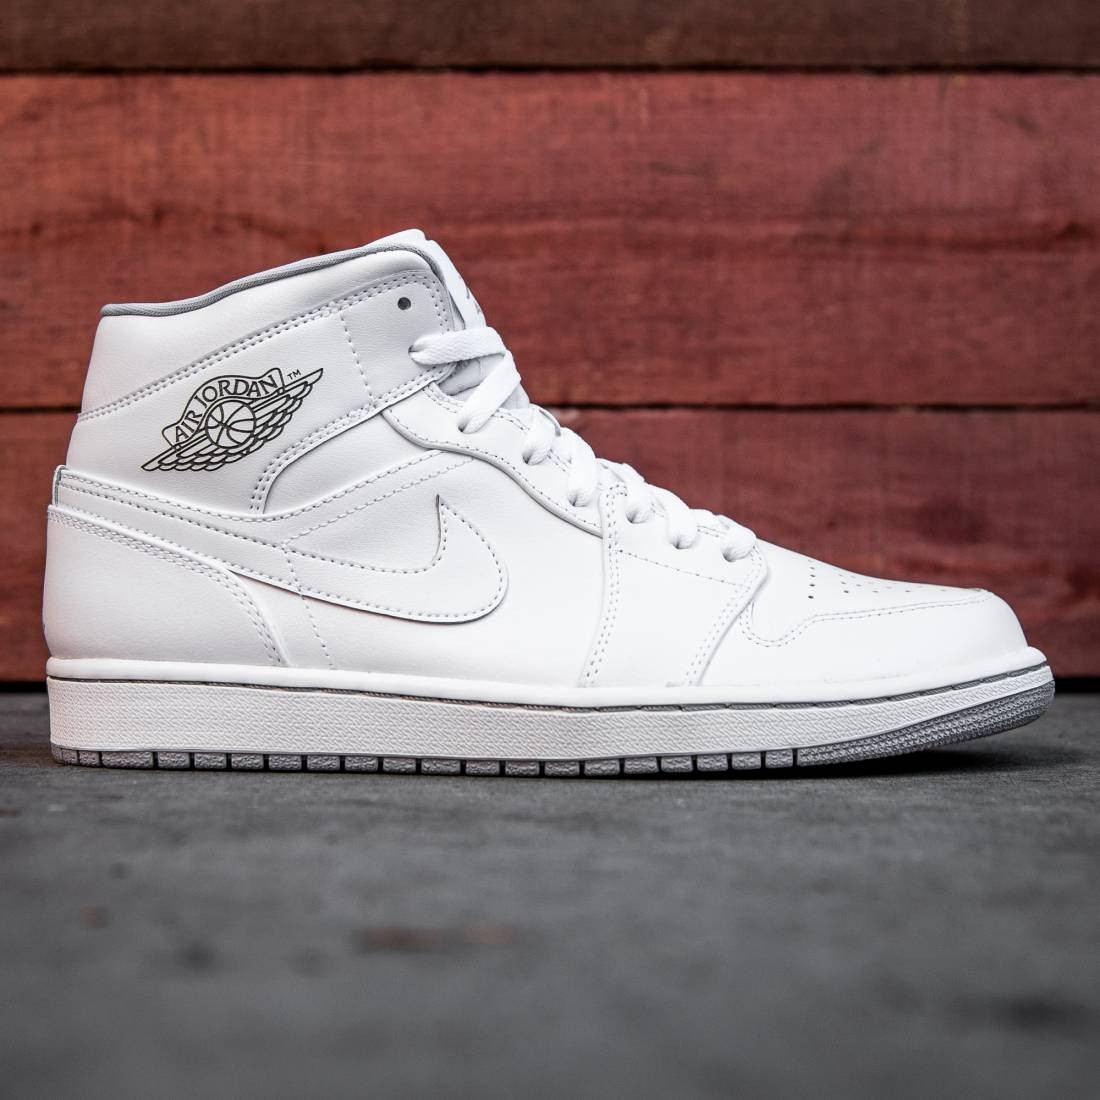 new arrival 4b135 0ec93 Jordan Men Air Jordan 1 Mid white  white-wolf grey